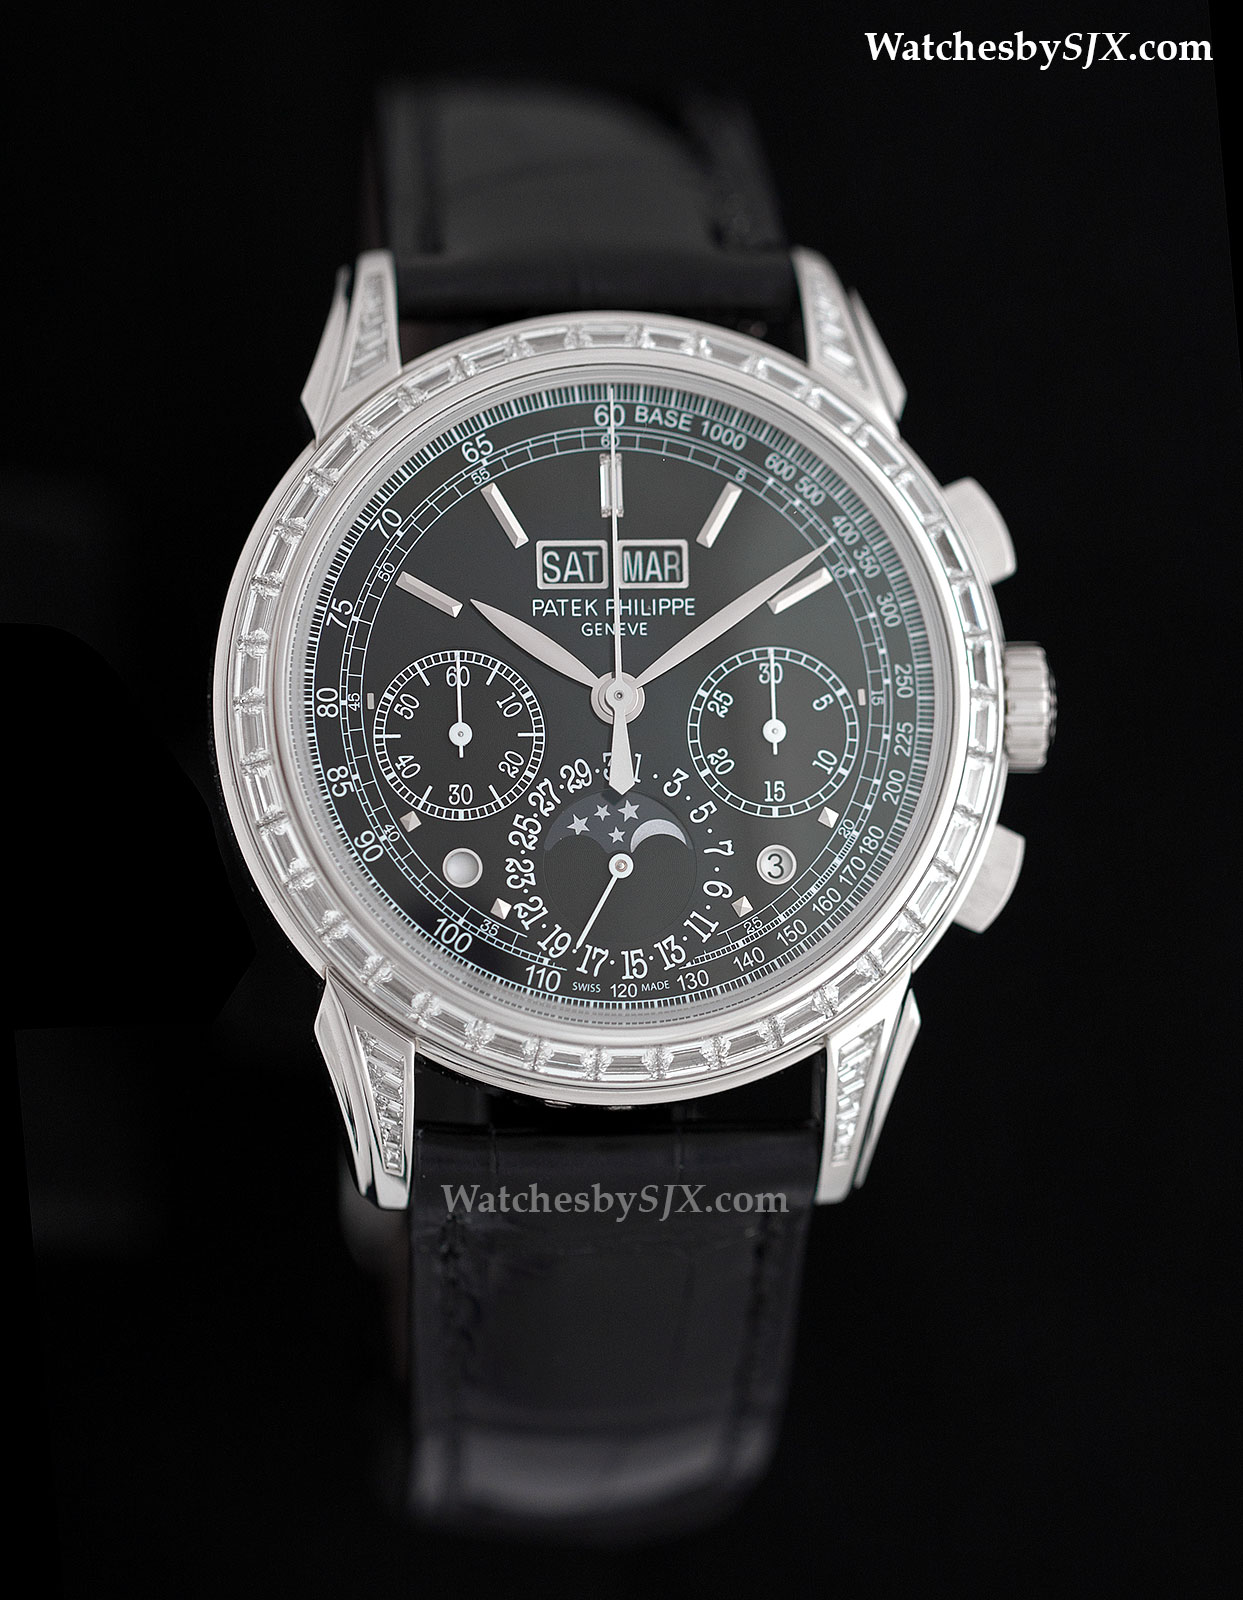 Patek philippe watch with diamonds for Patek phillipe watch